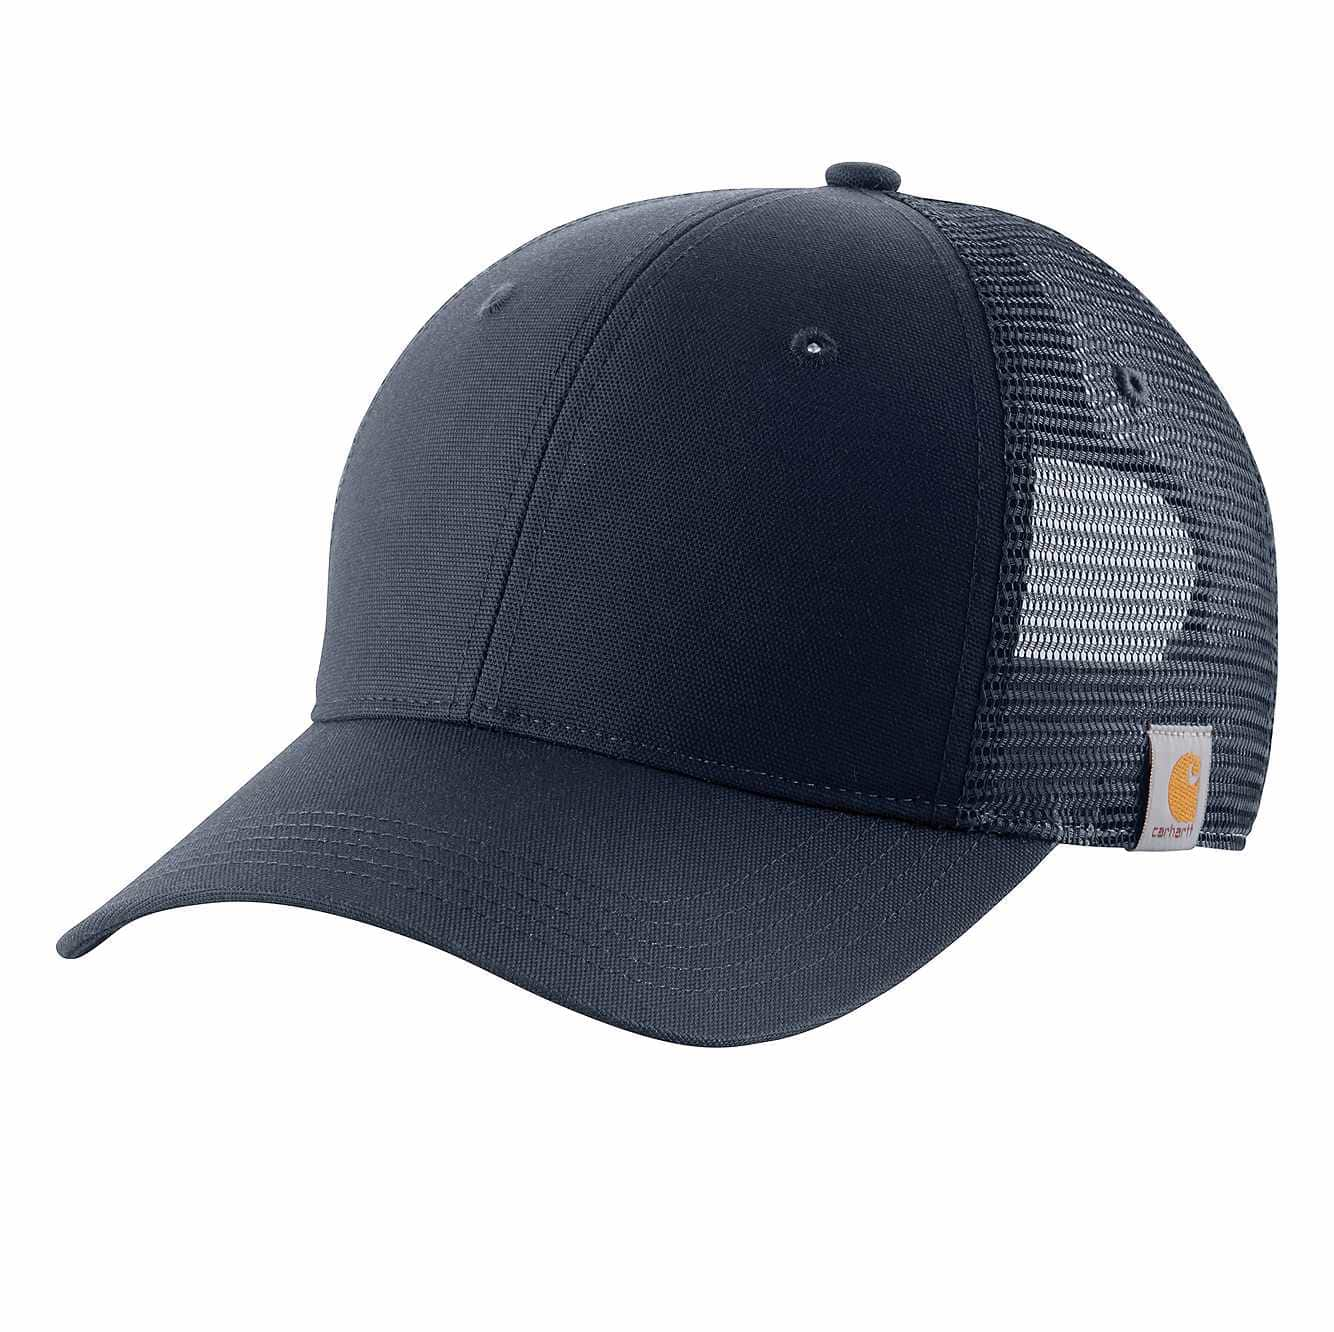 Picture of Rugged Professional™ Series Baseball Cap in Navy